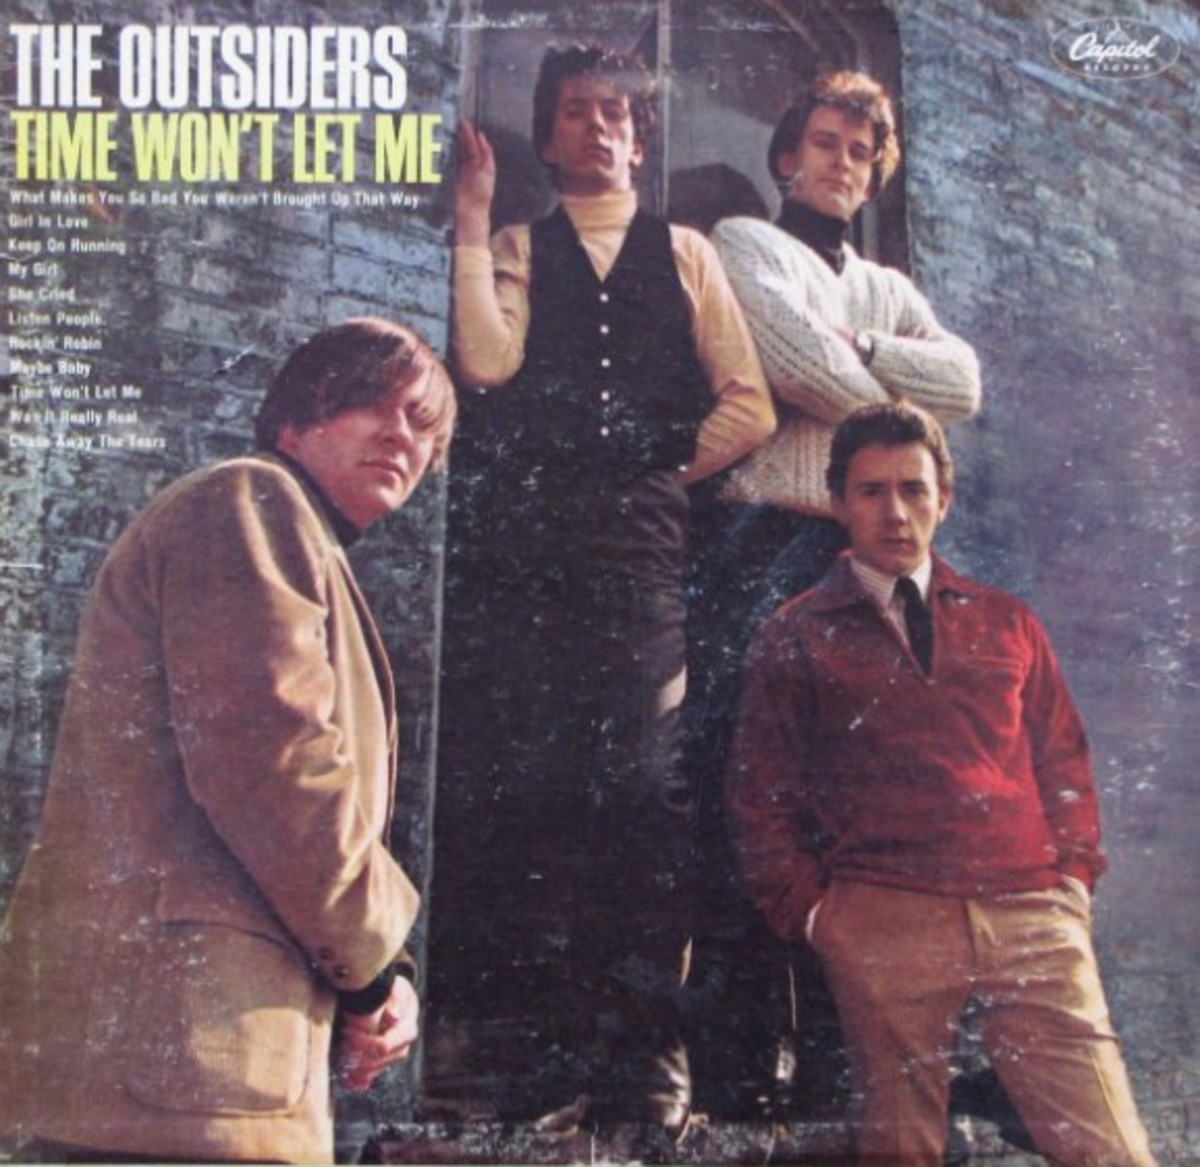 Outsiders Time album